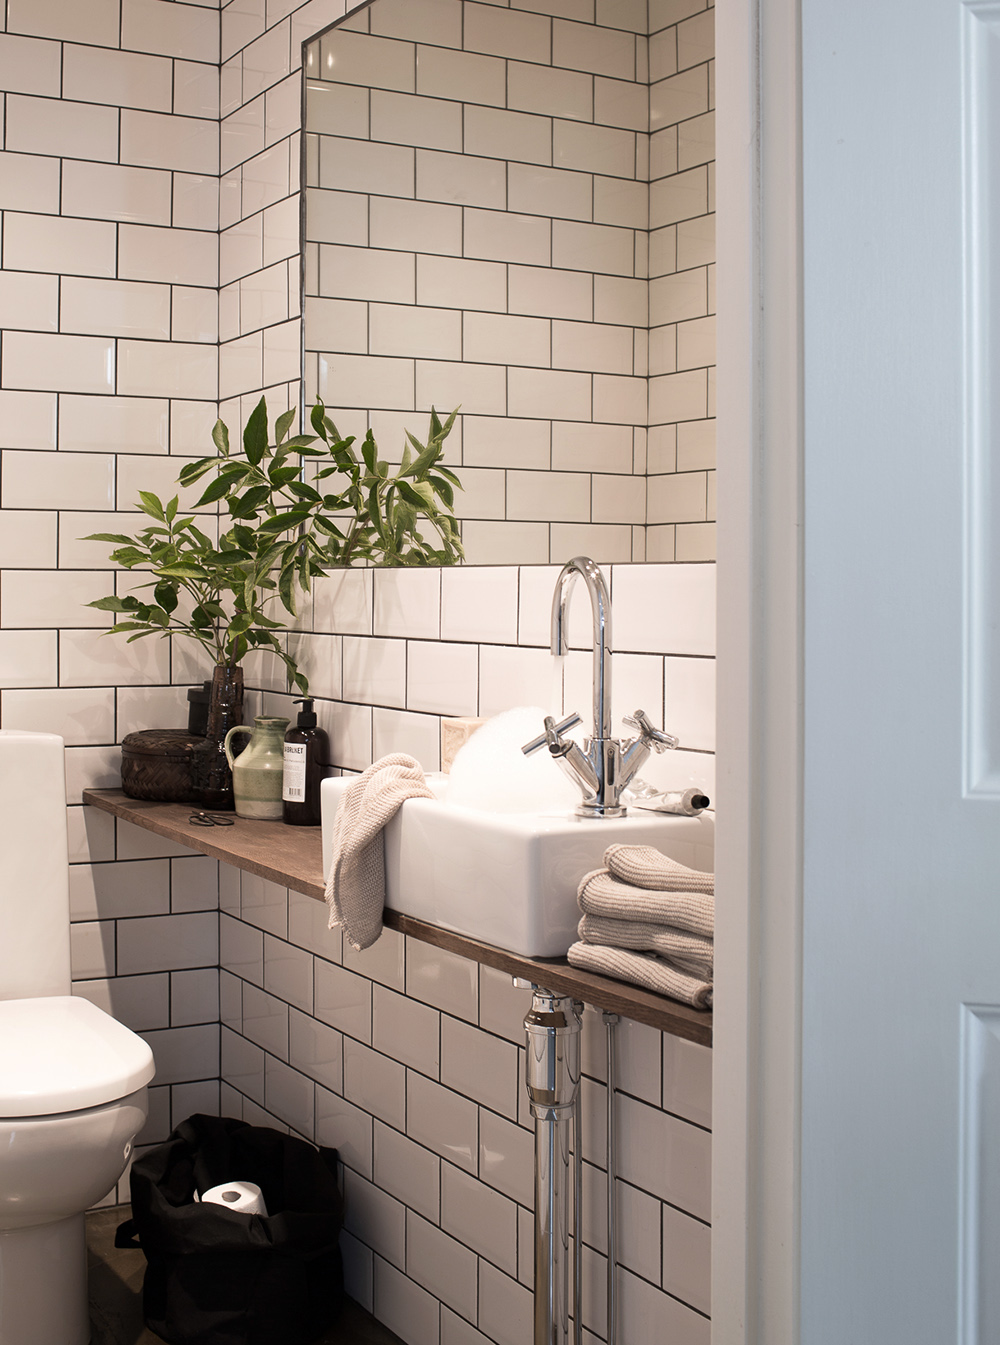 G sttoaletten fick mer avst llningsyta daniella witte for Bathroom ideas long narrow space